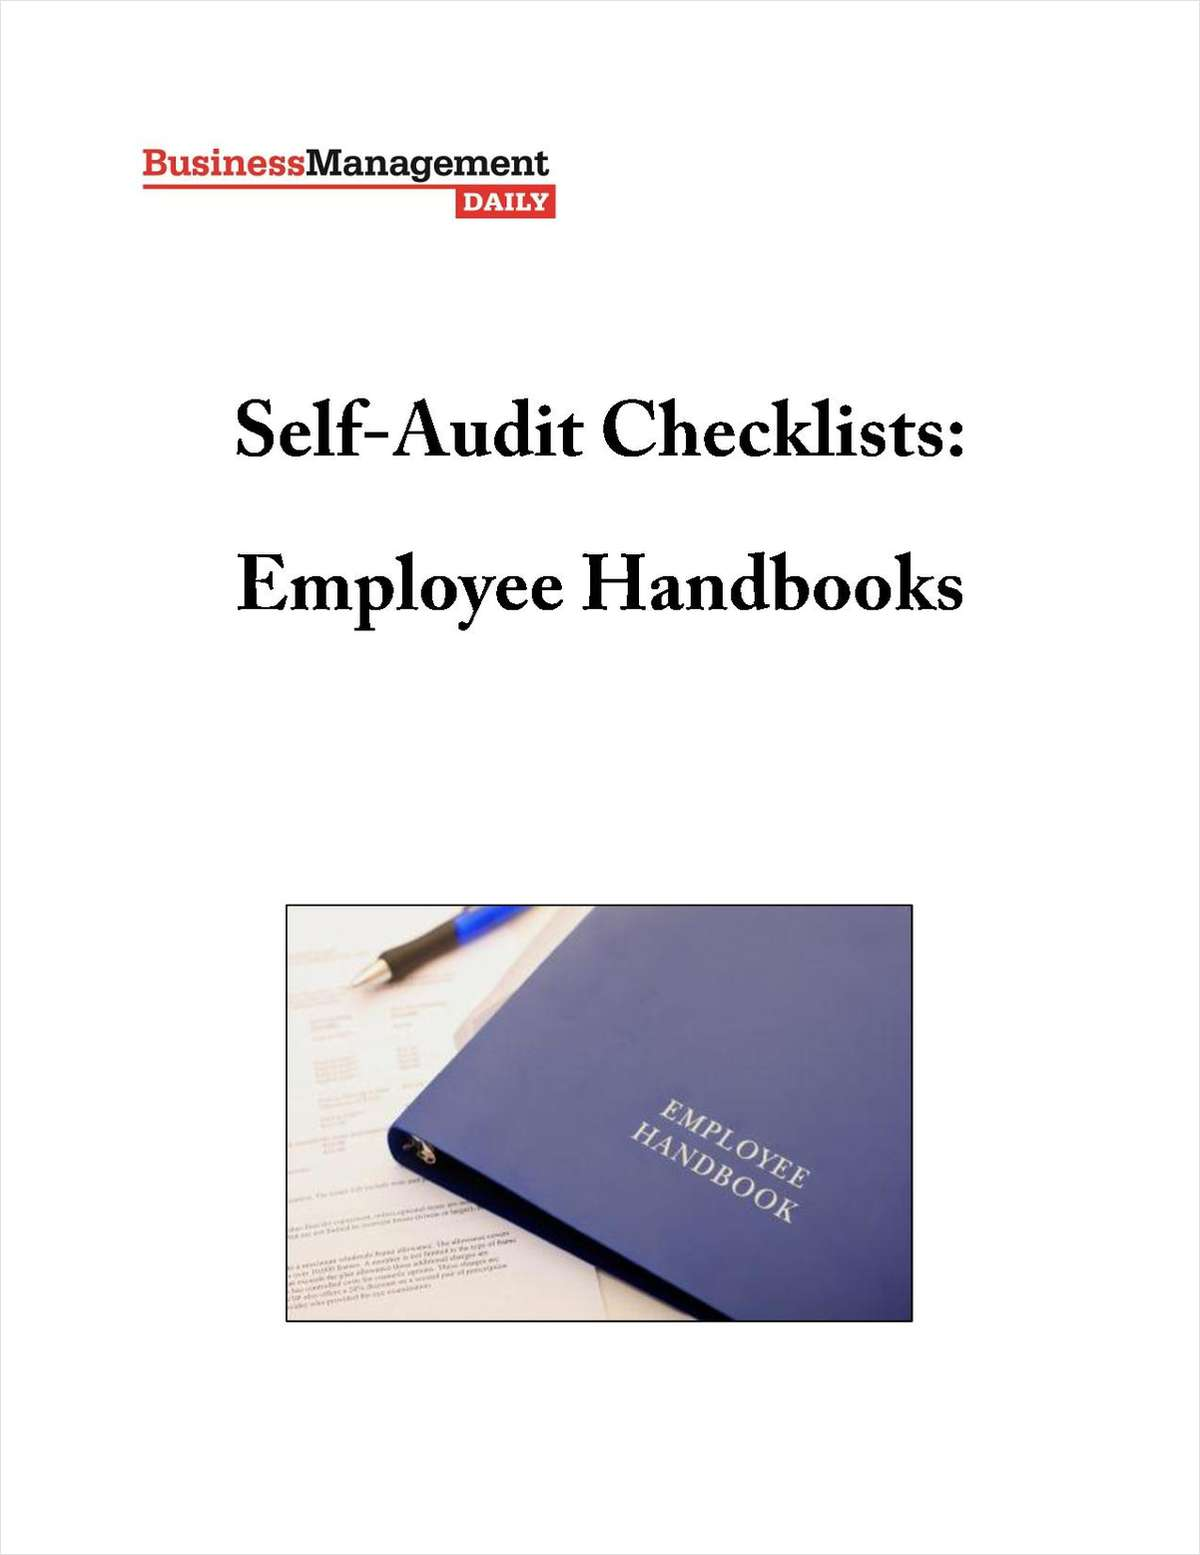 Self-Audit Checklist: Your Employee Handbook